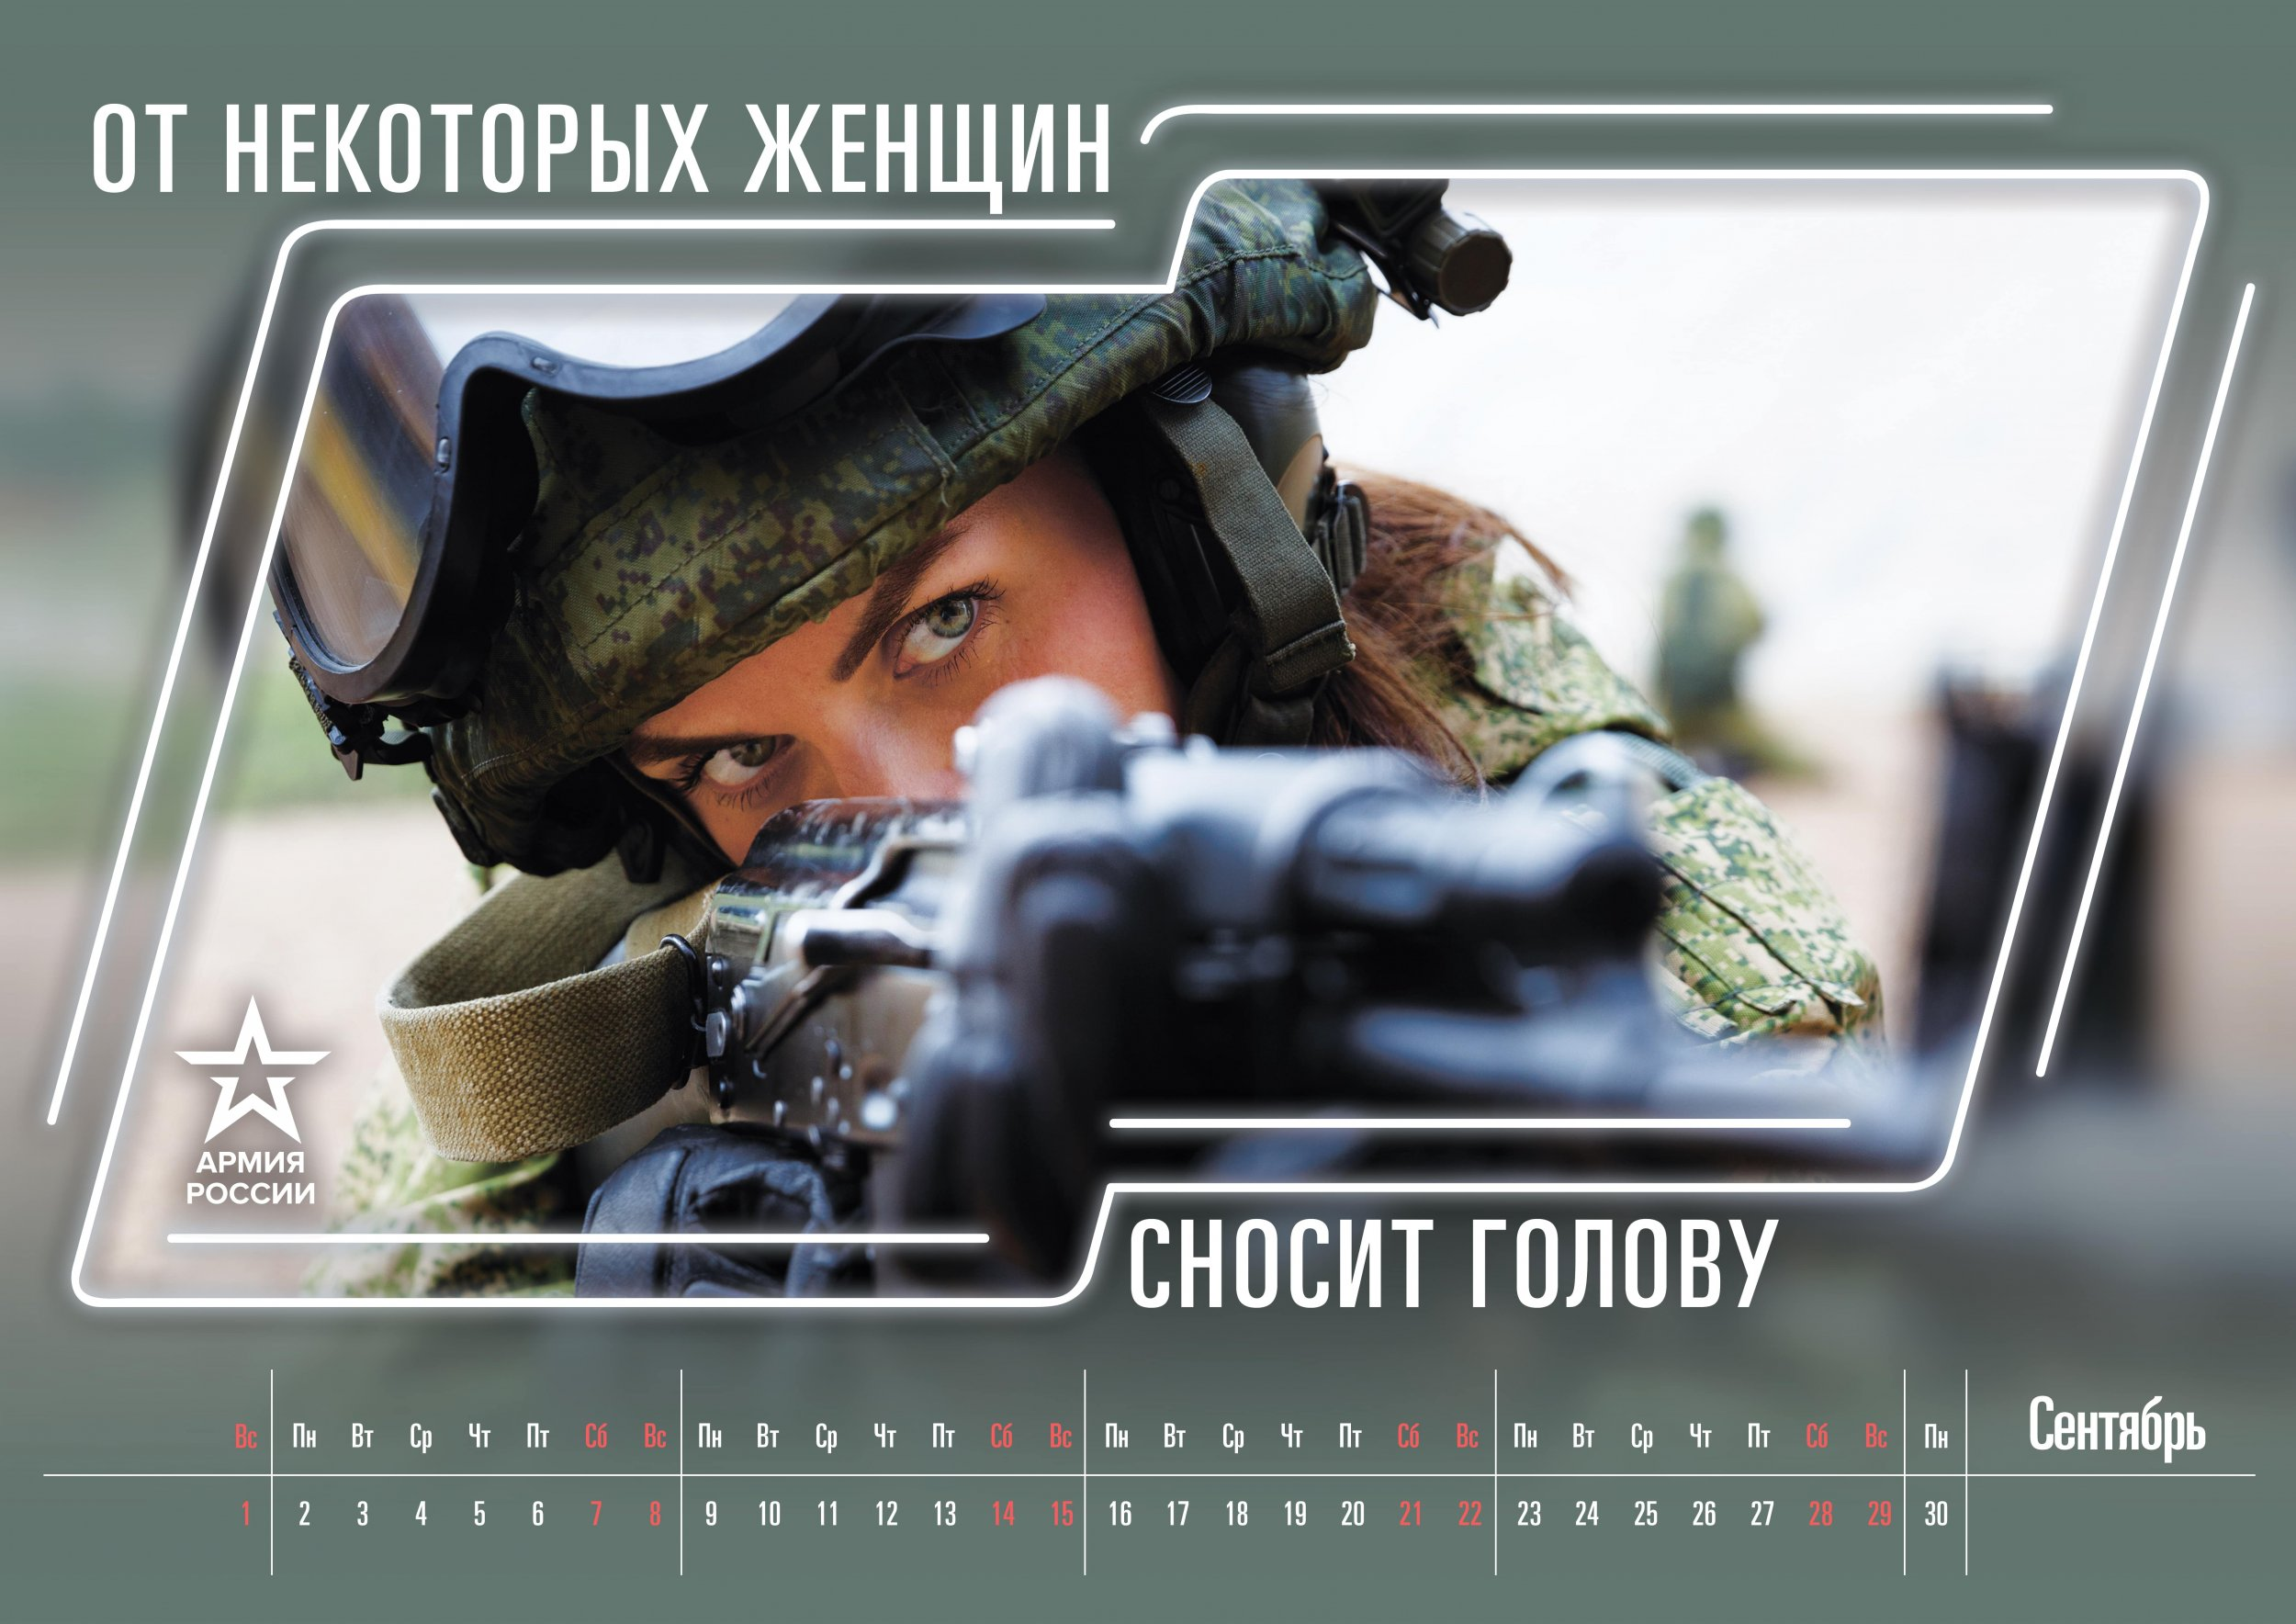 Russia Shows Off Military Might in 2019 Calendar Photos With